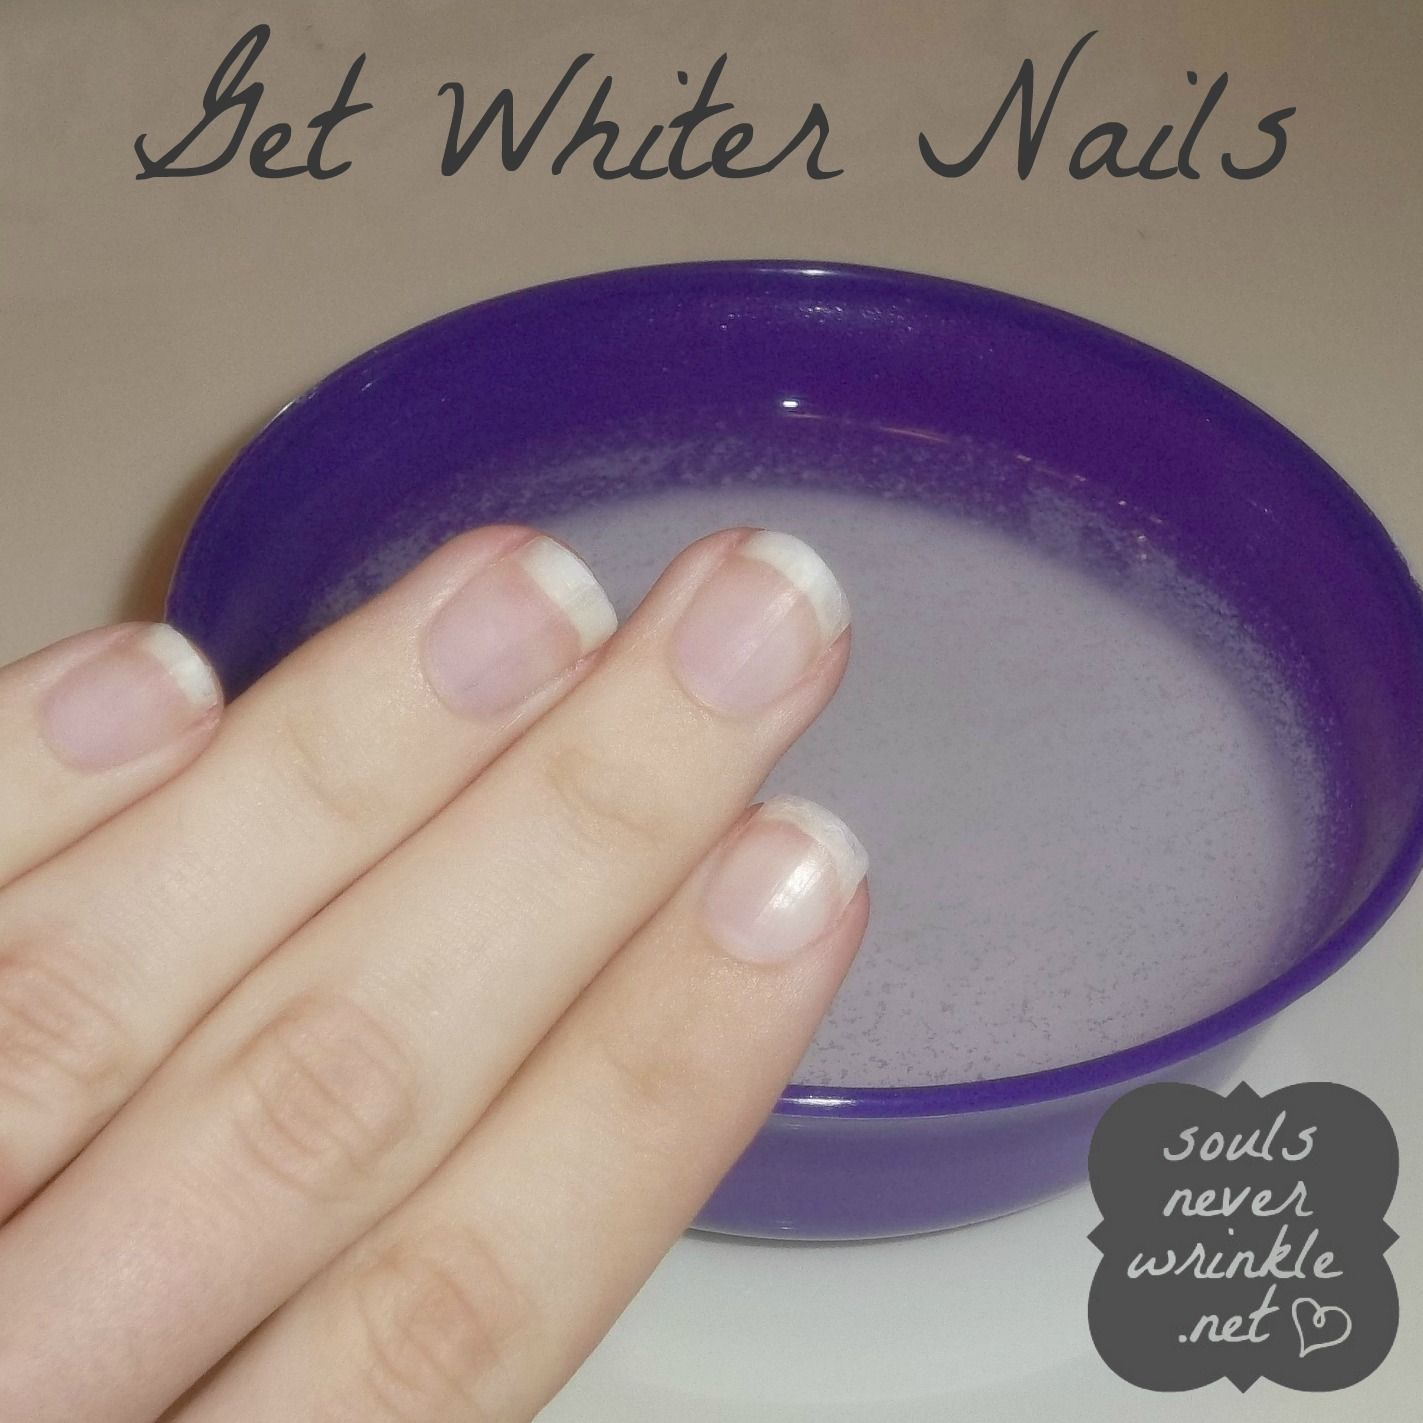 Simple and effective nail baths at home 2